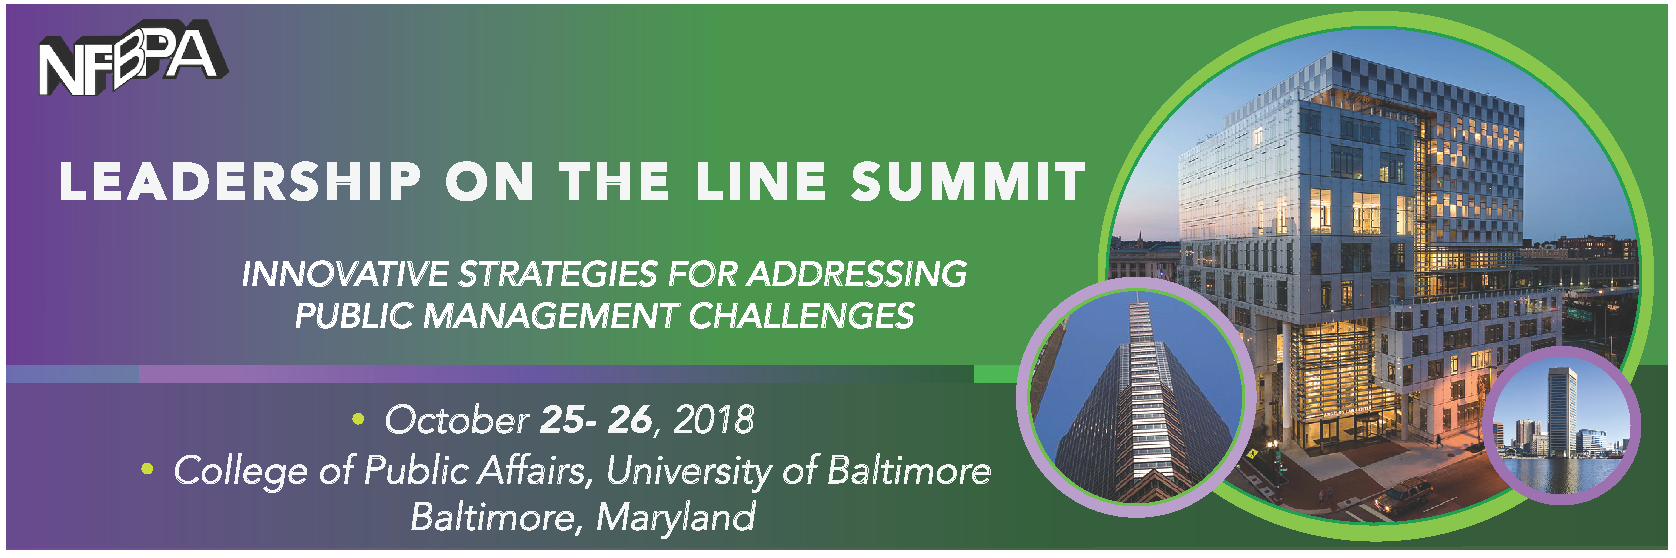 Leadership on the Line Summit Info Relea